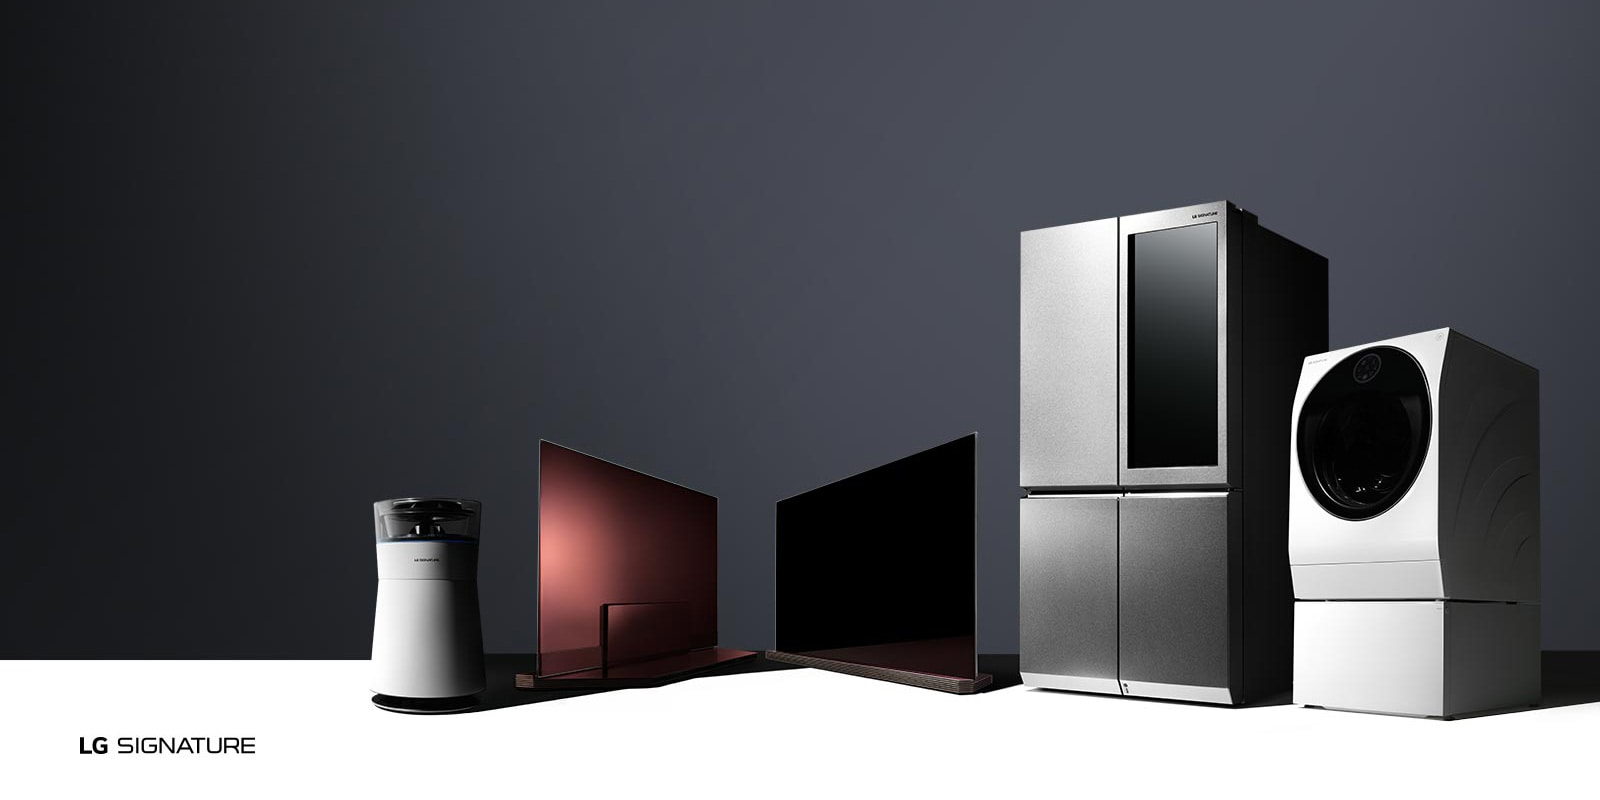 LG TV, Computers, Appliances, Air Conditioners and Mobile Phones